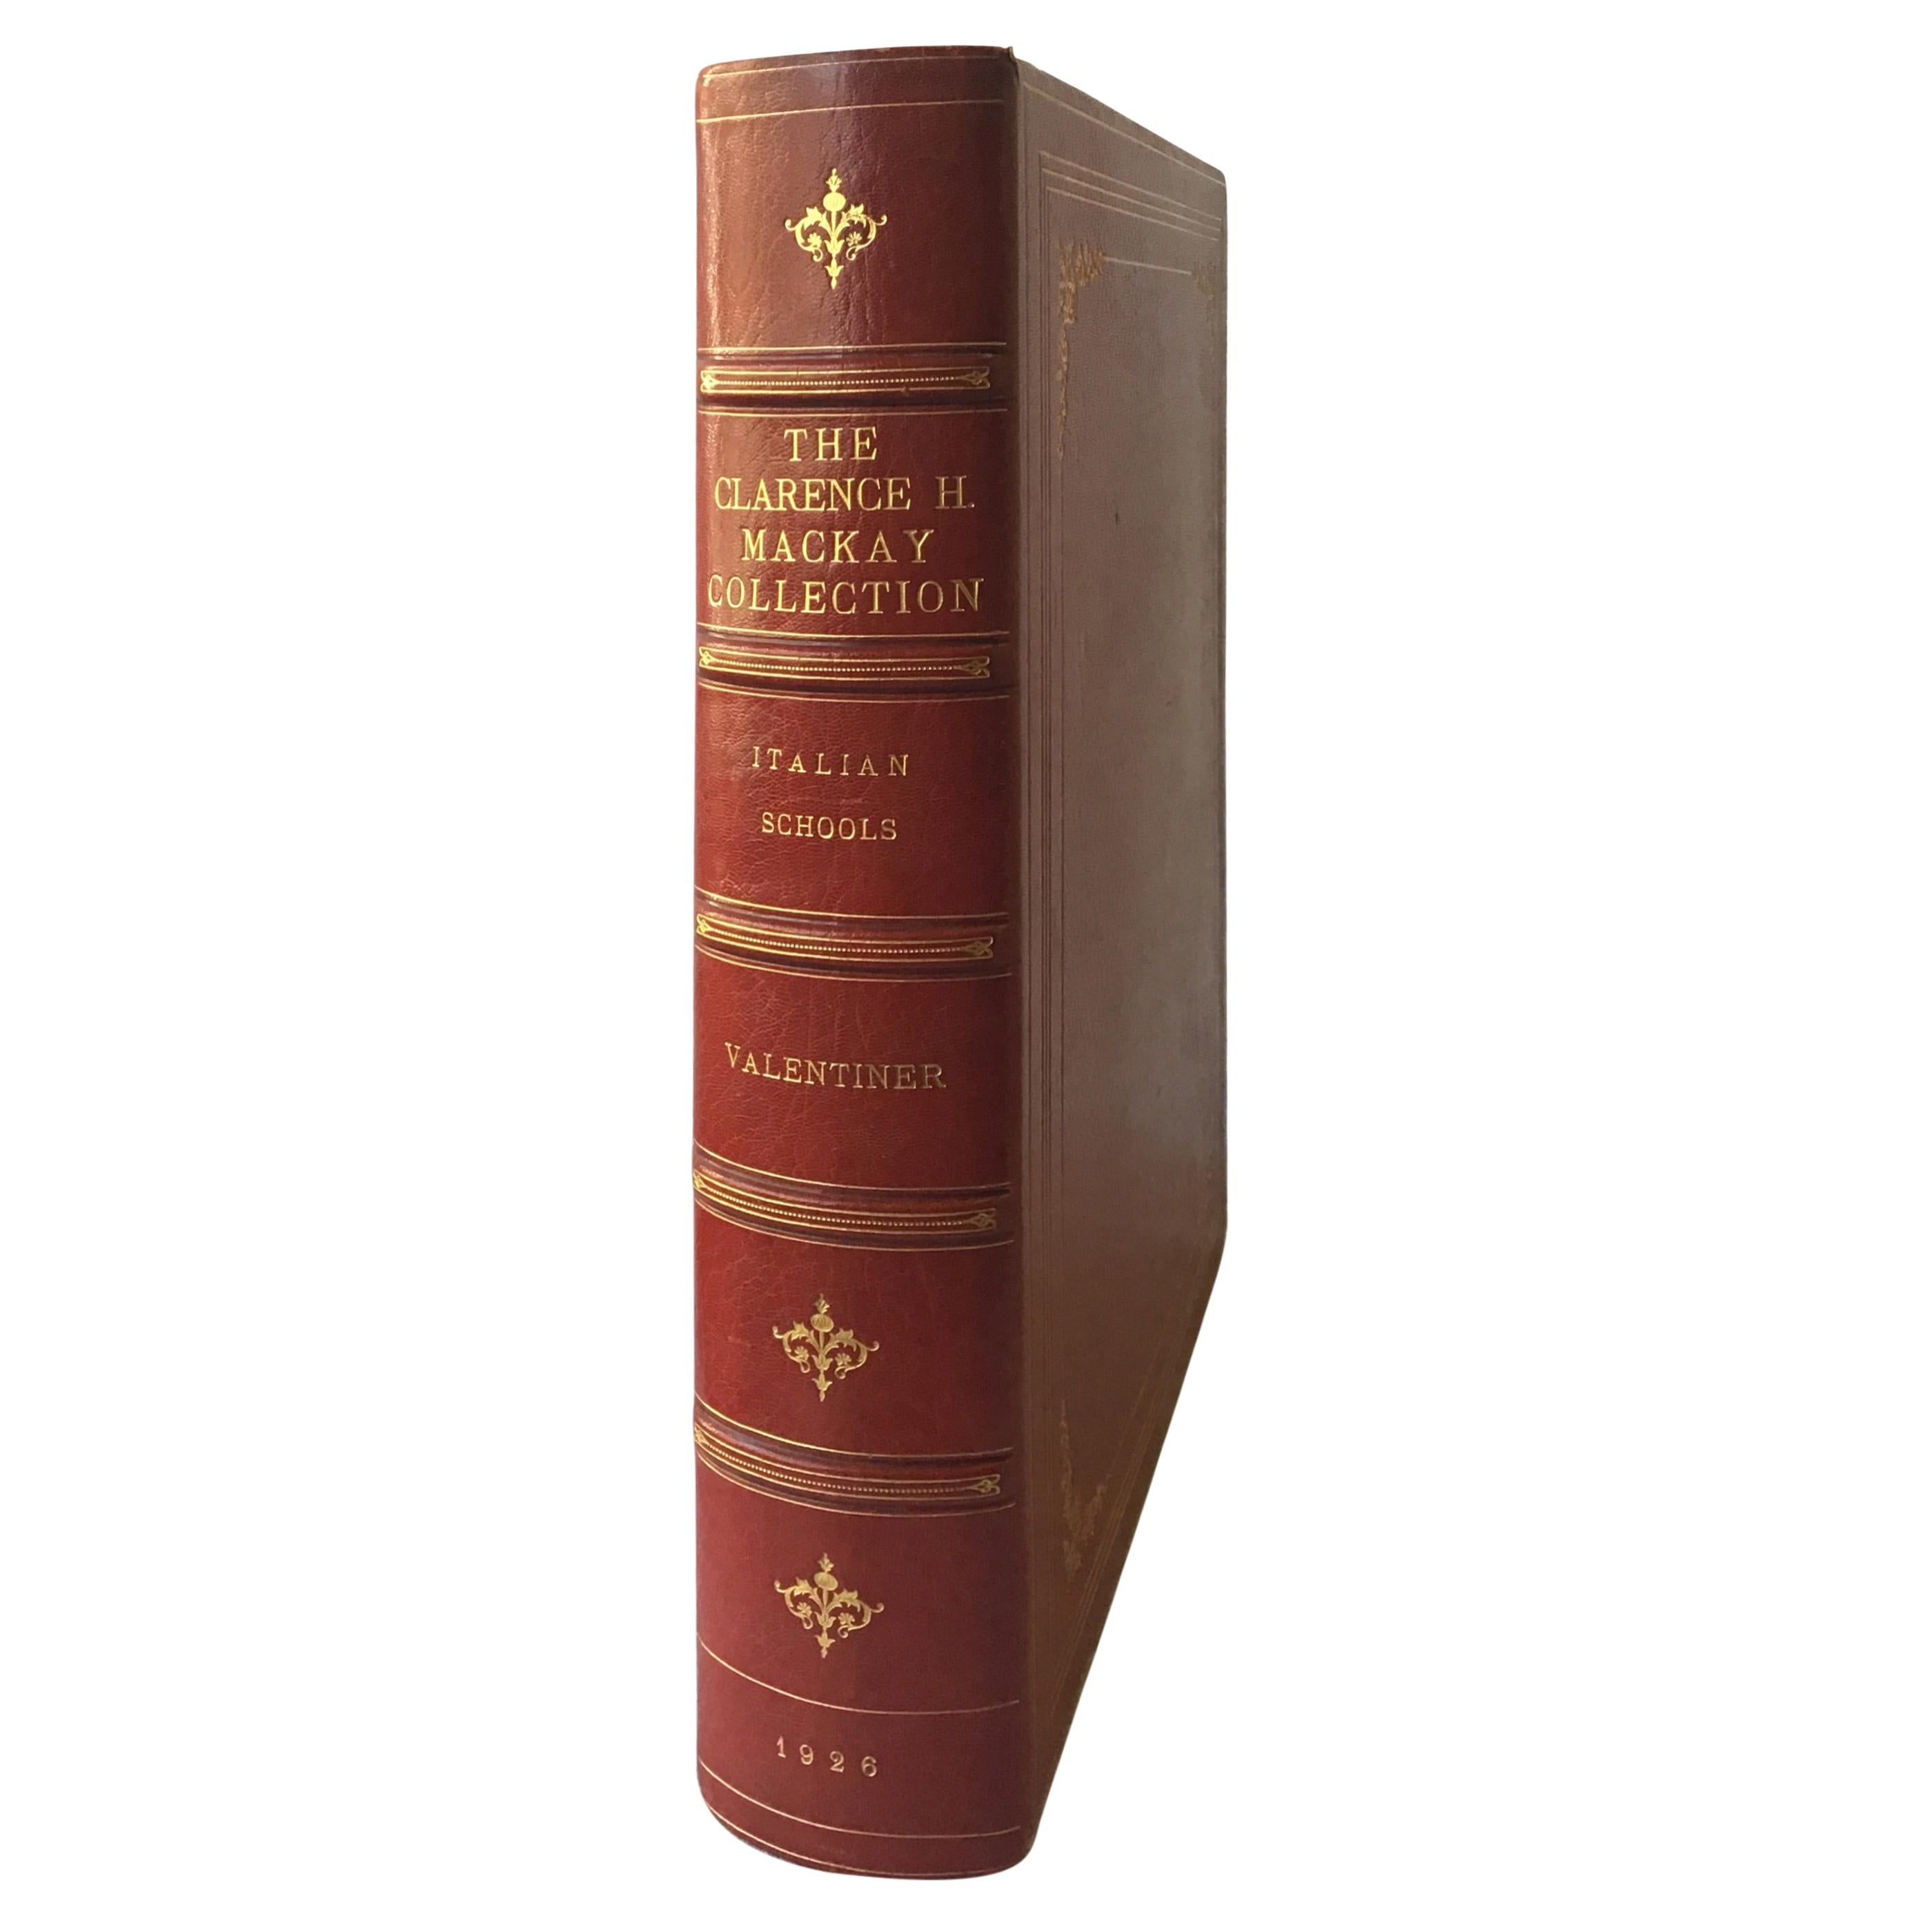 The Clarance H. Mackay Collection, Italian Schools, by William R. Valentiner